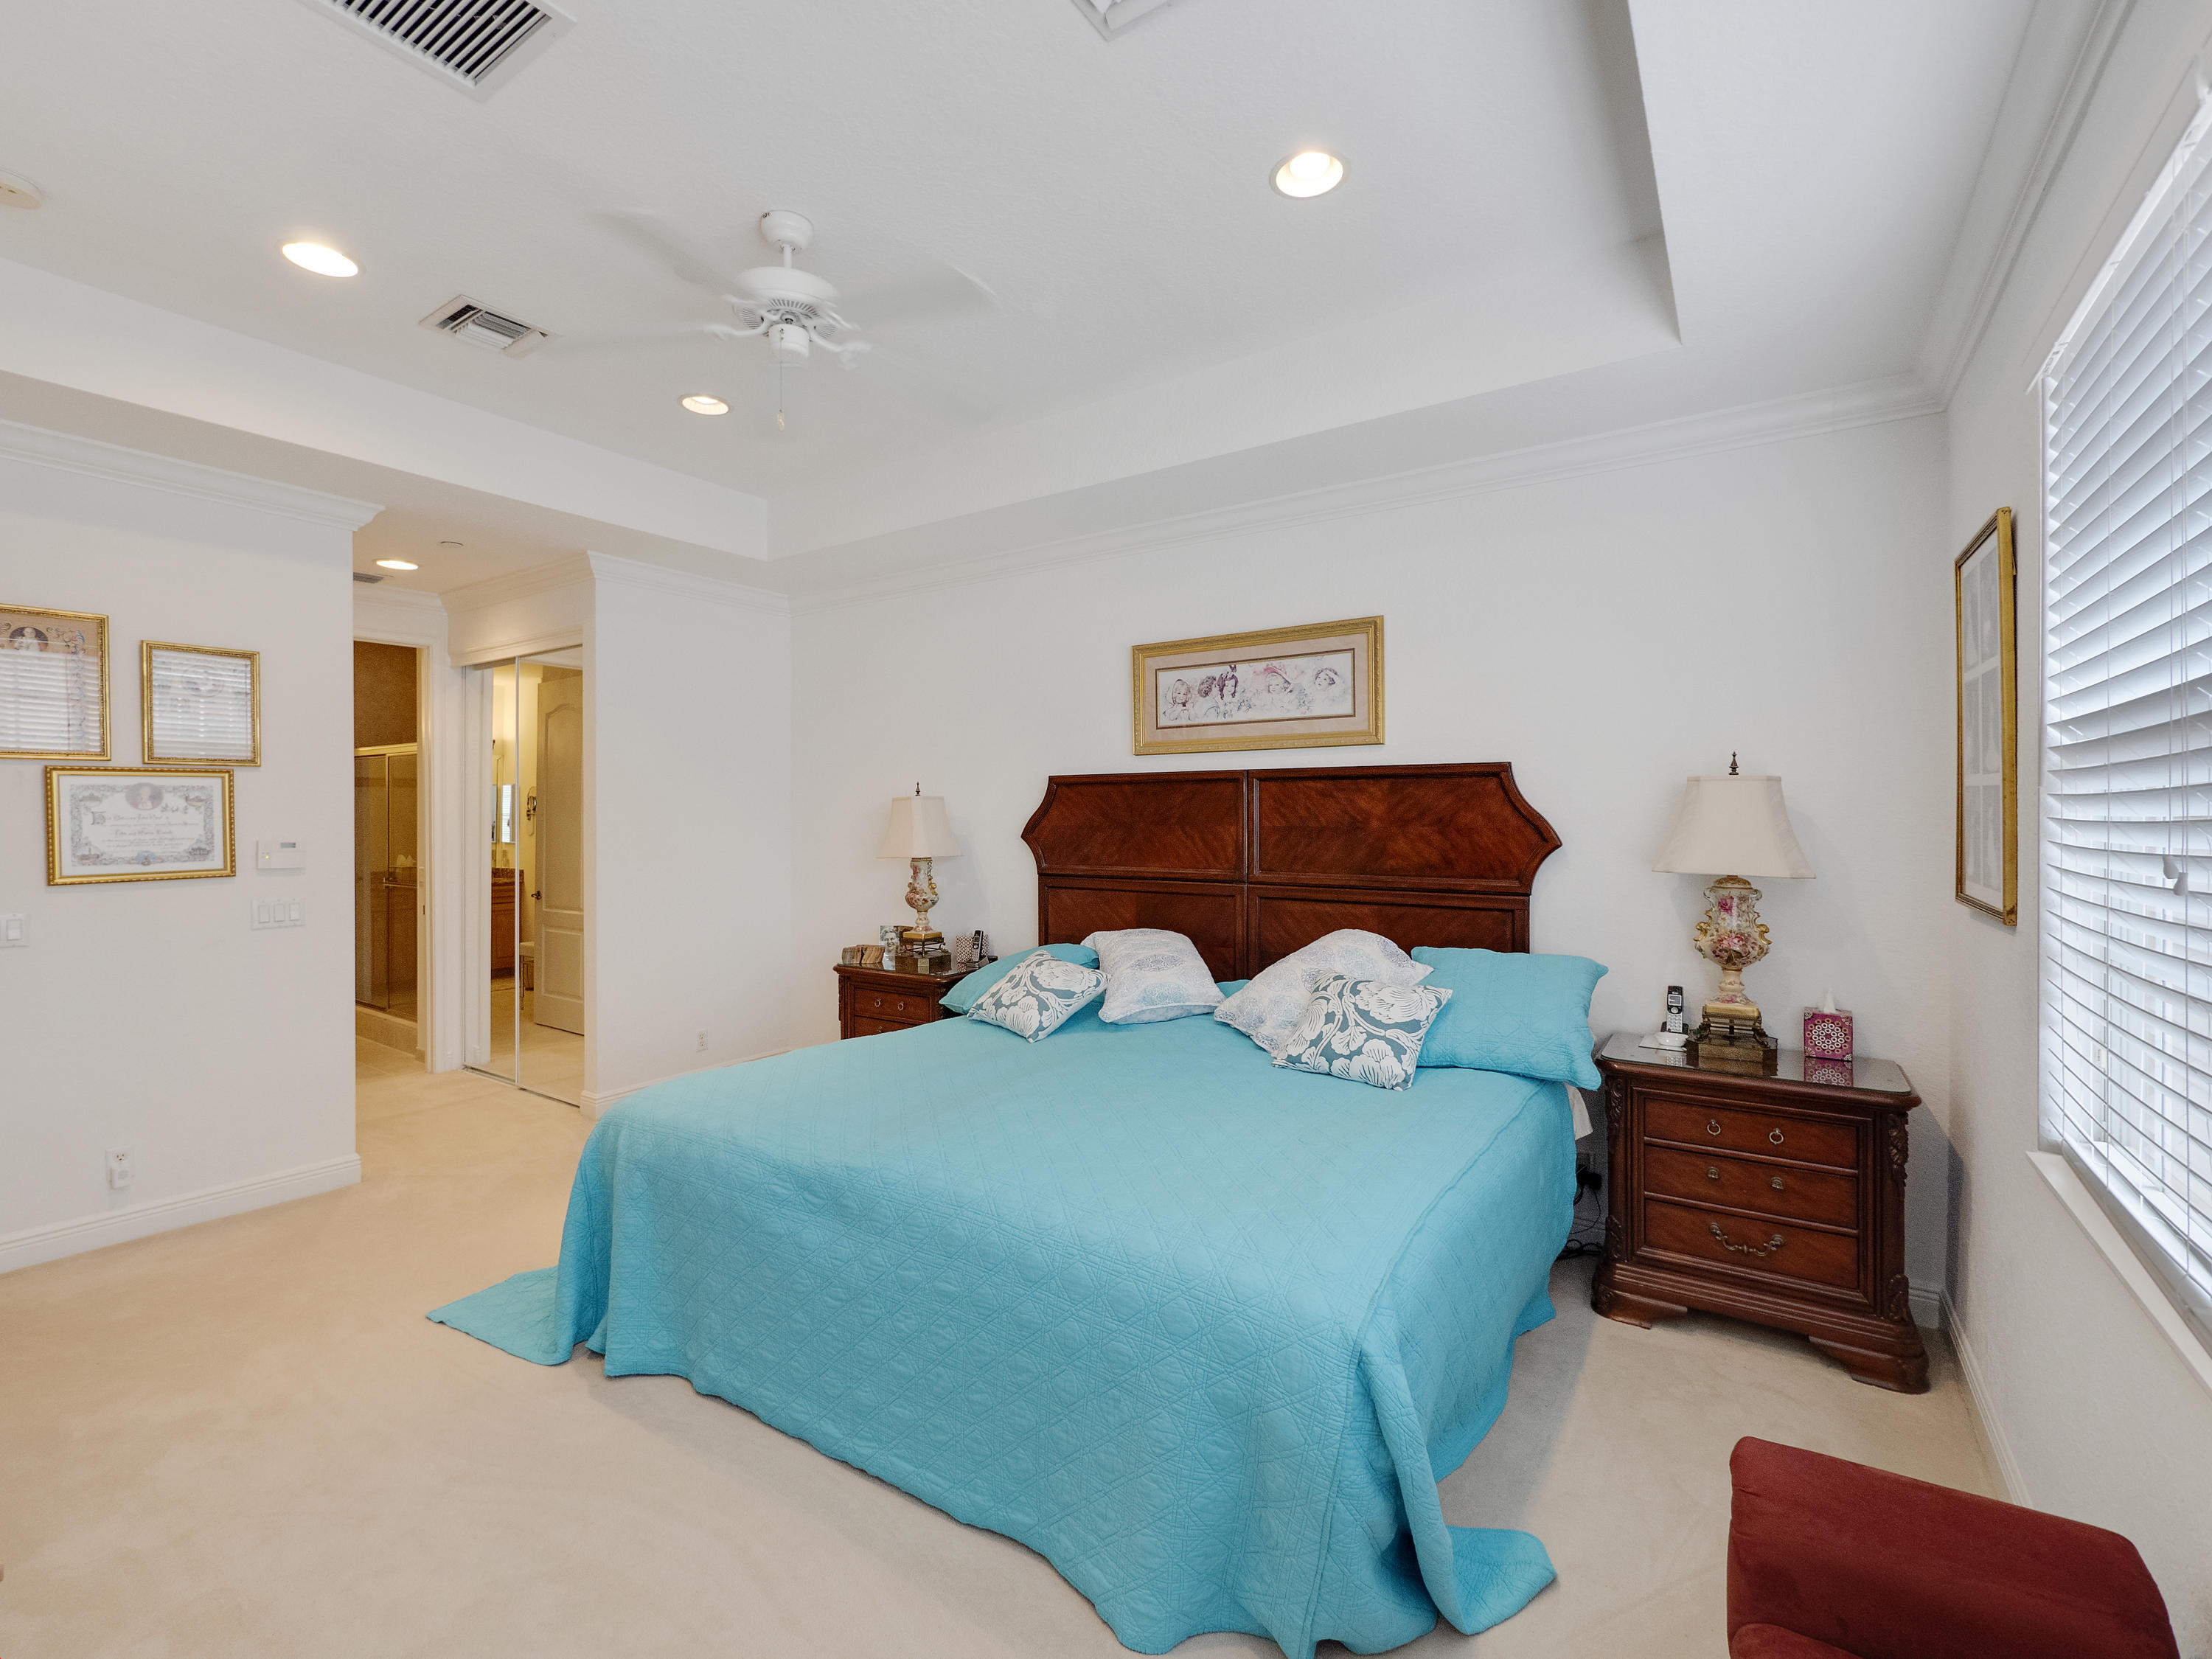 LOT 6 IN BLOCK D2 OF CIELO TOWNHOMES AT THE SHOPS OF DONALD ROSS